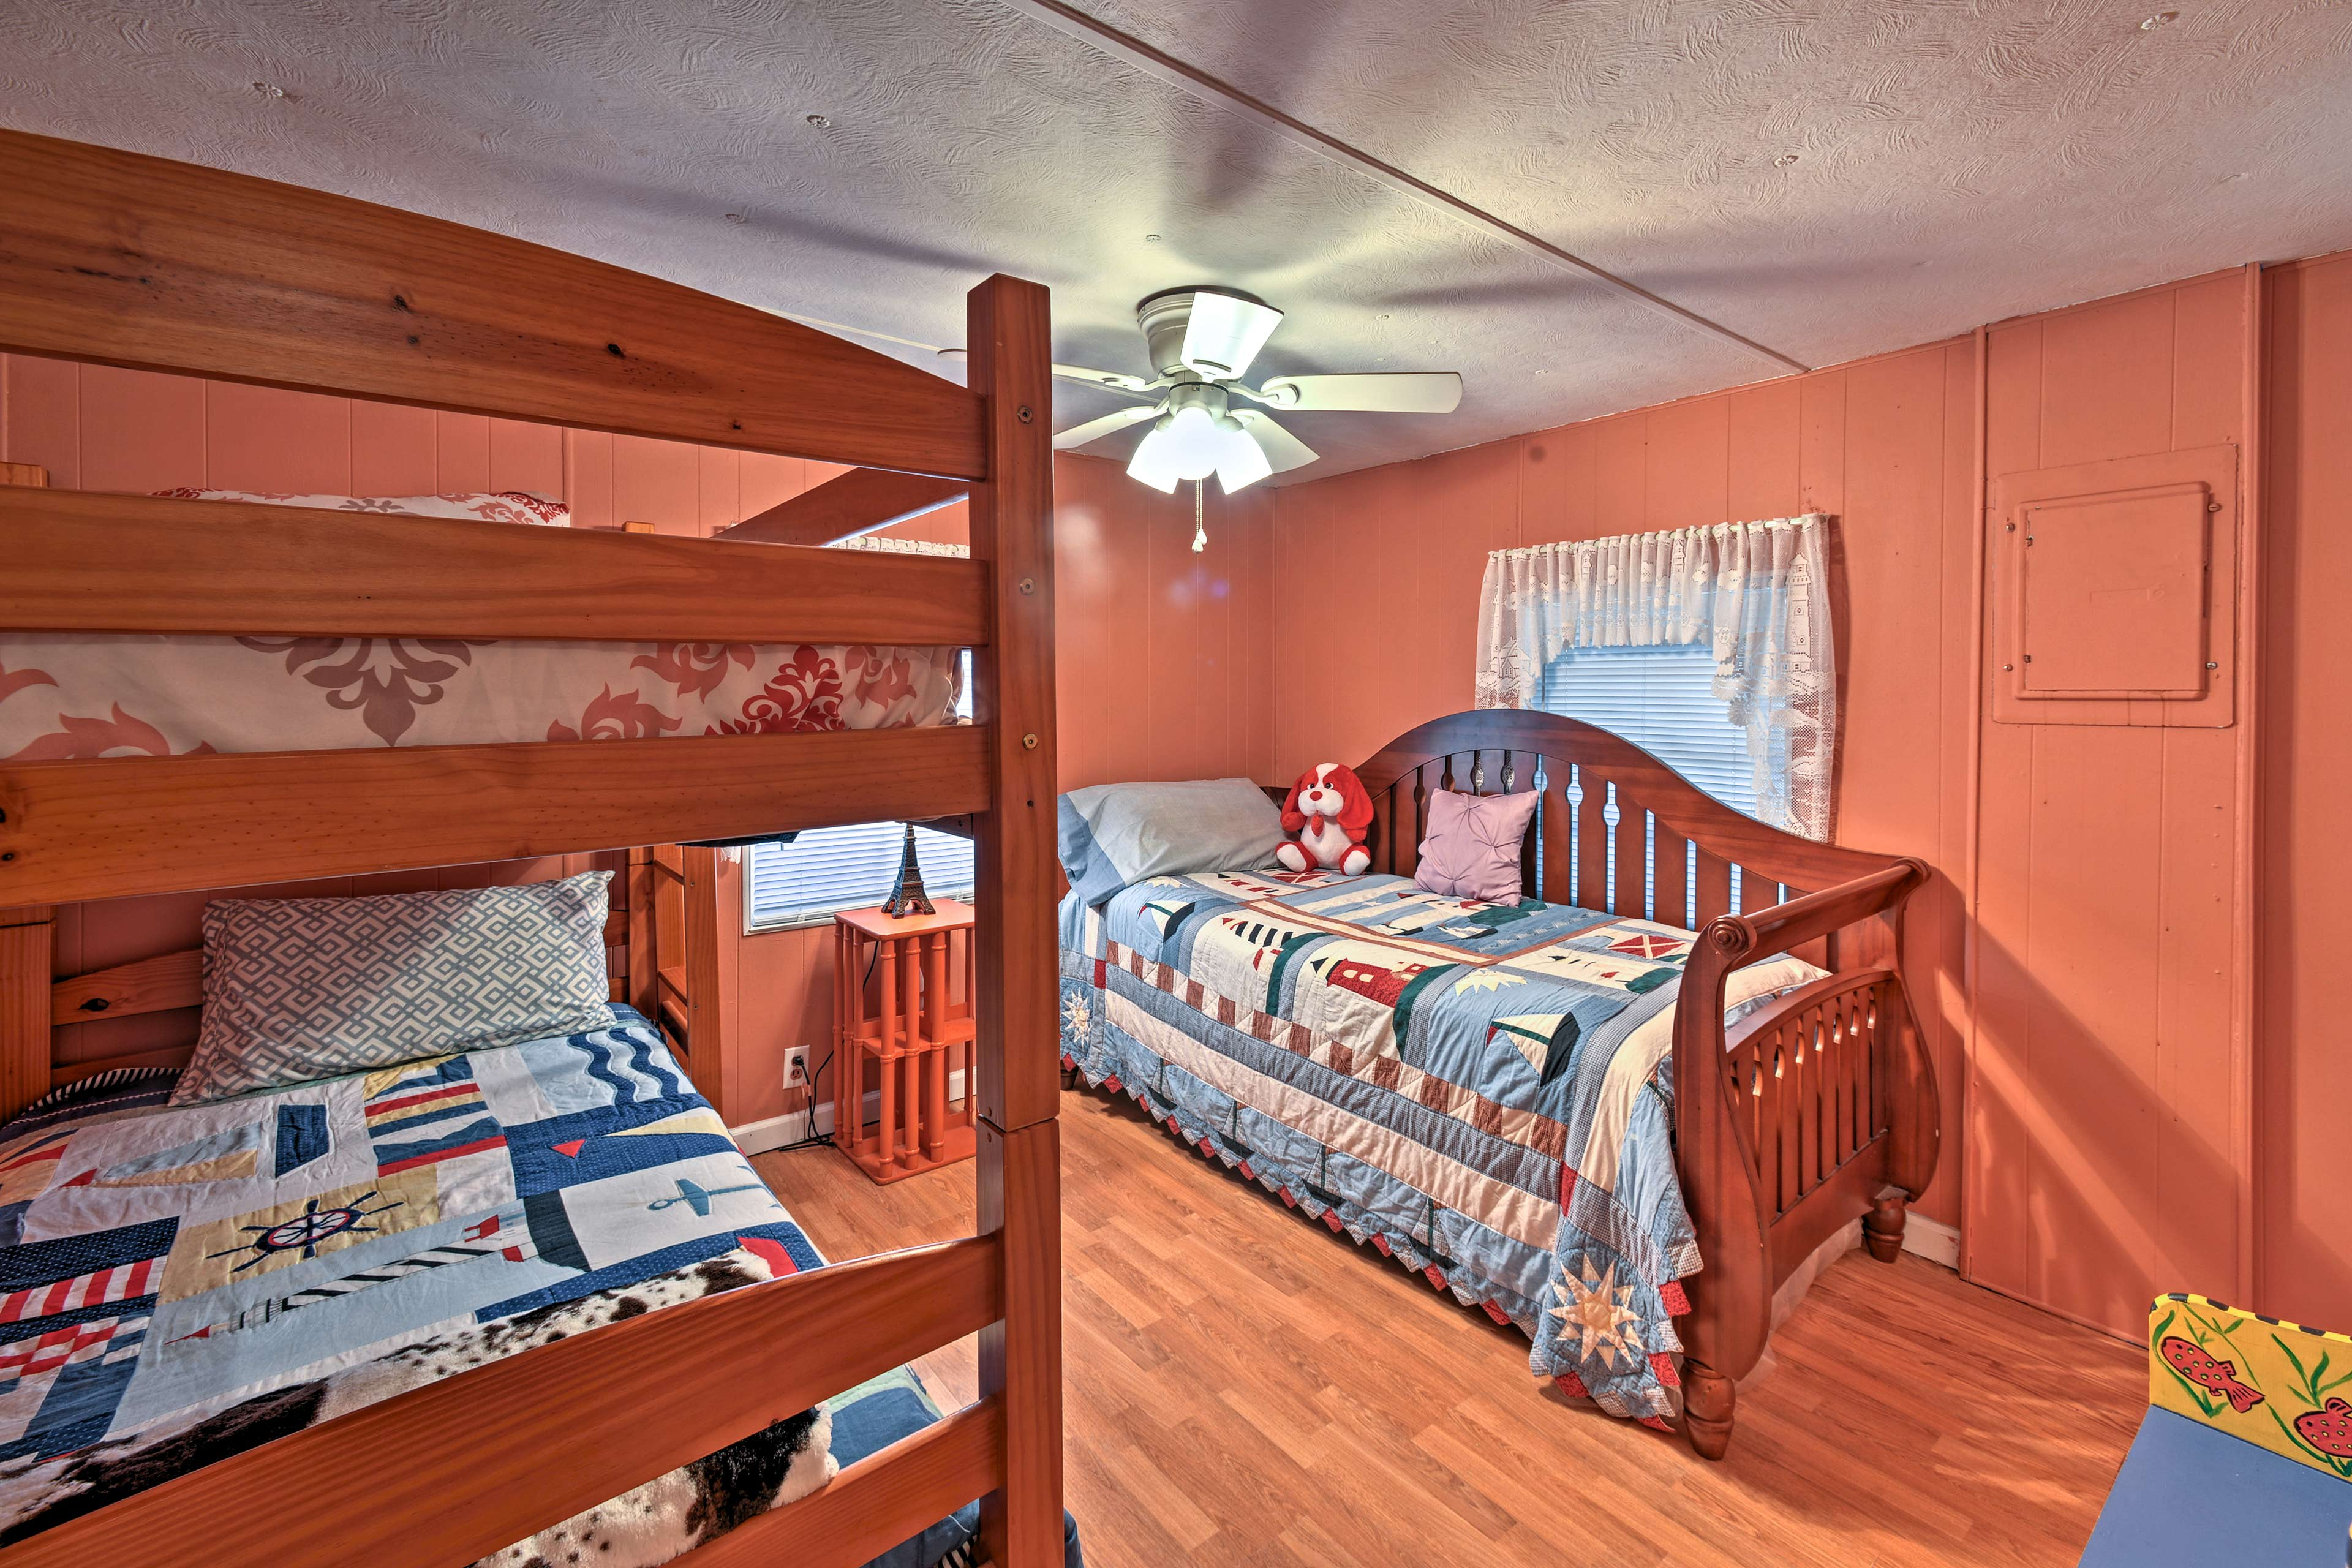 The third bedroom is furnished with a twin-over-twin bunk bed and twin daybed.